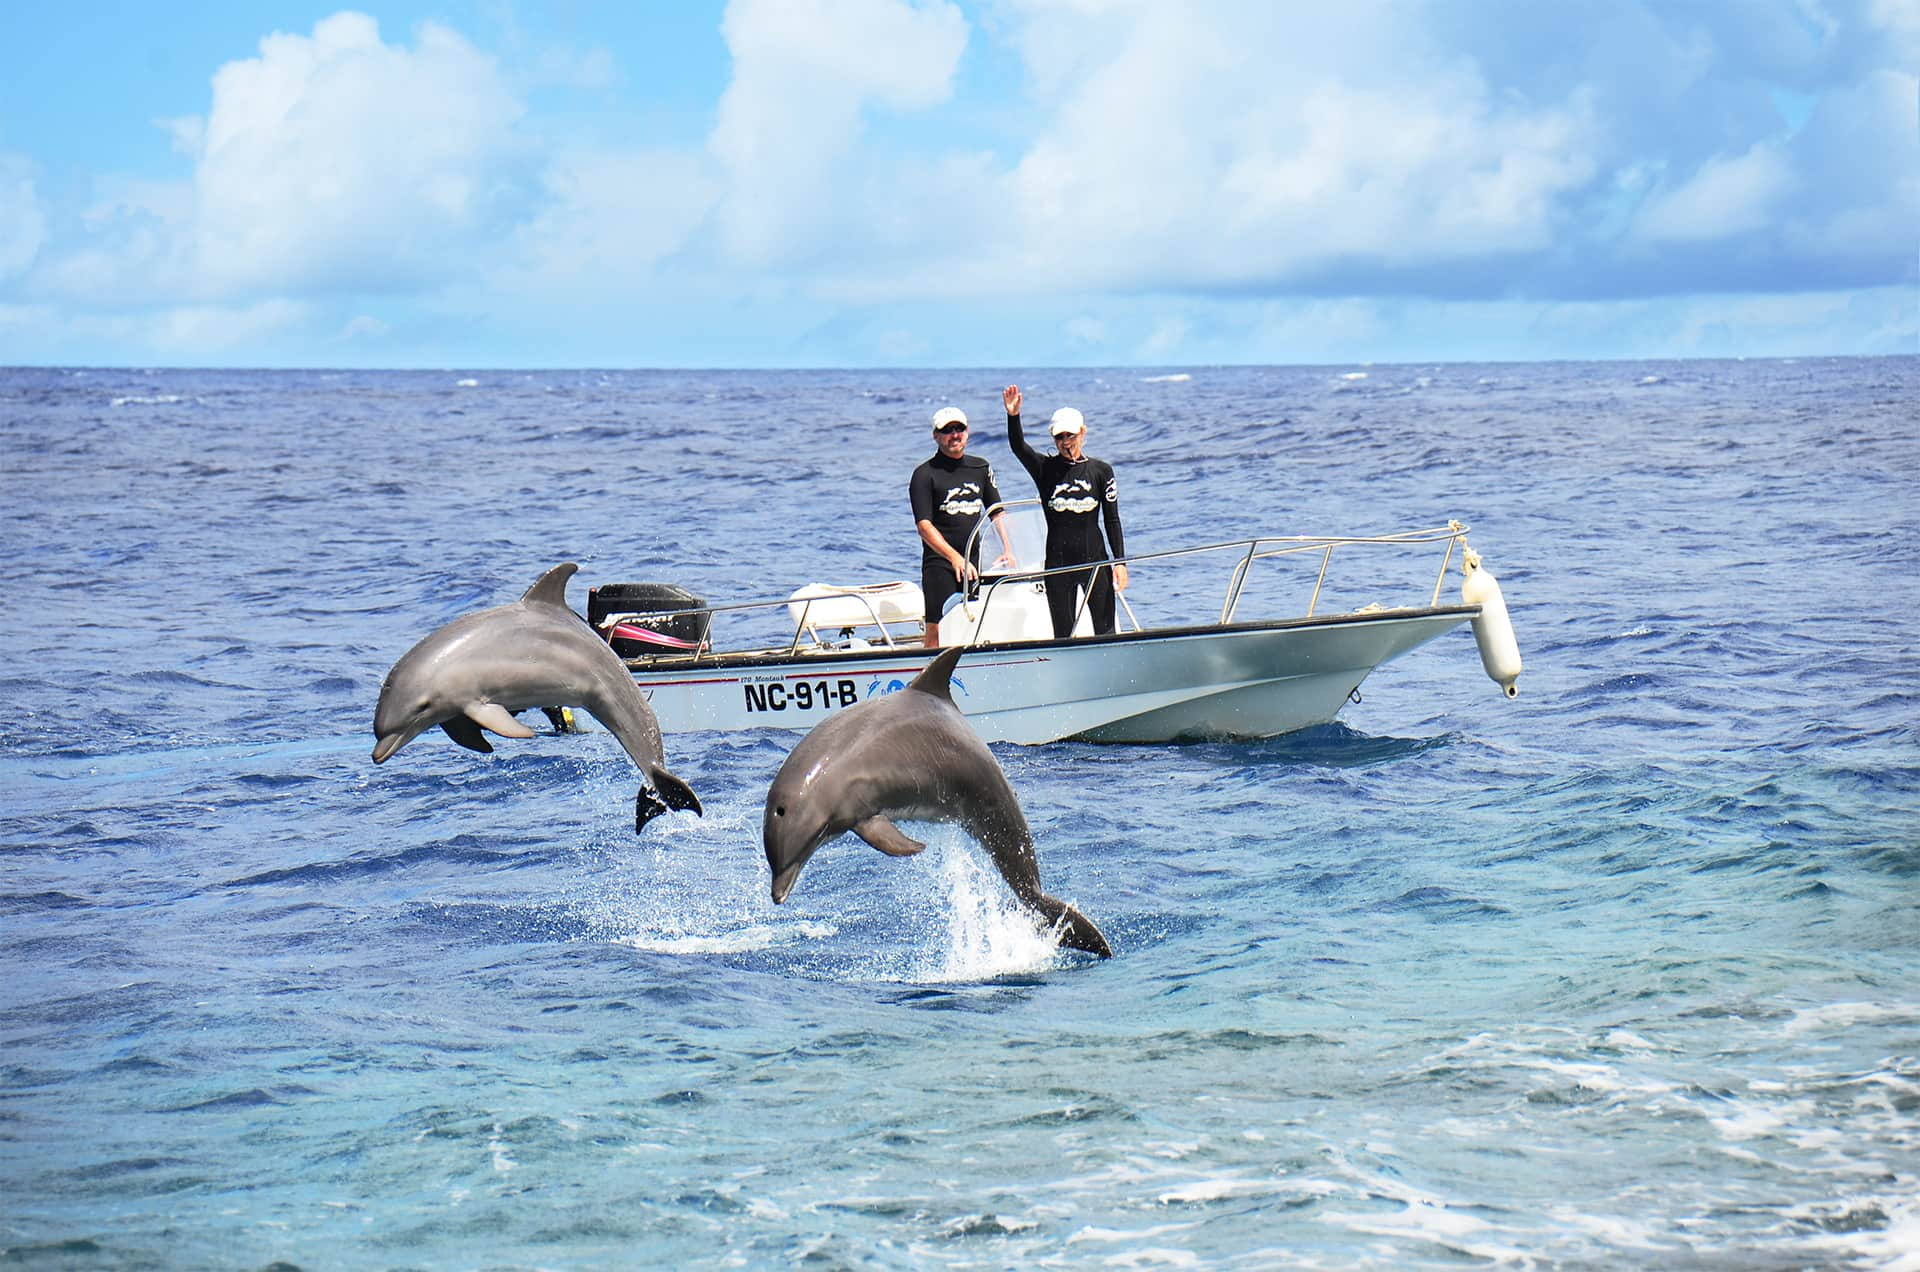 Dolphins receiving training on the open waters of Curaçao.